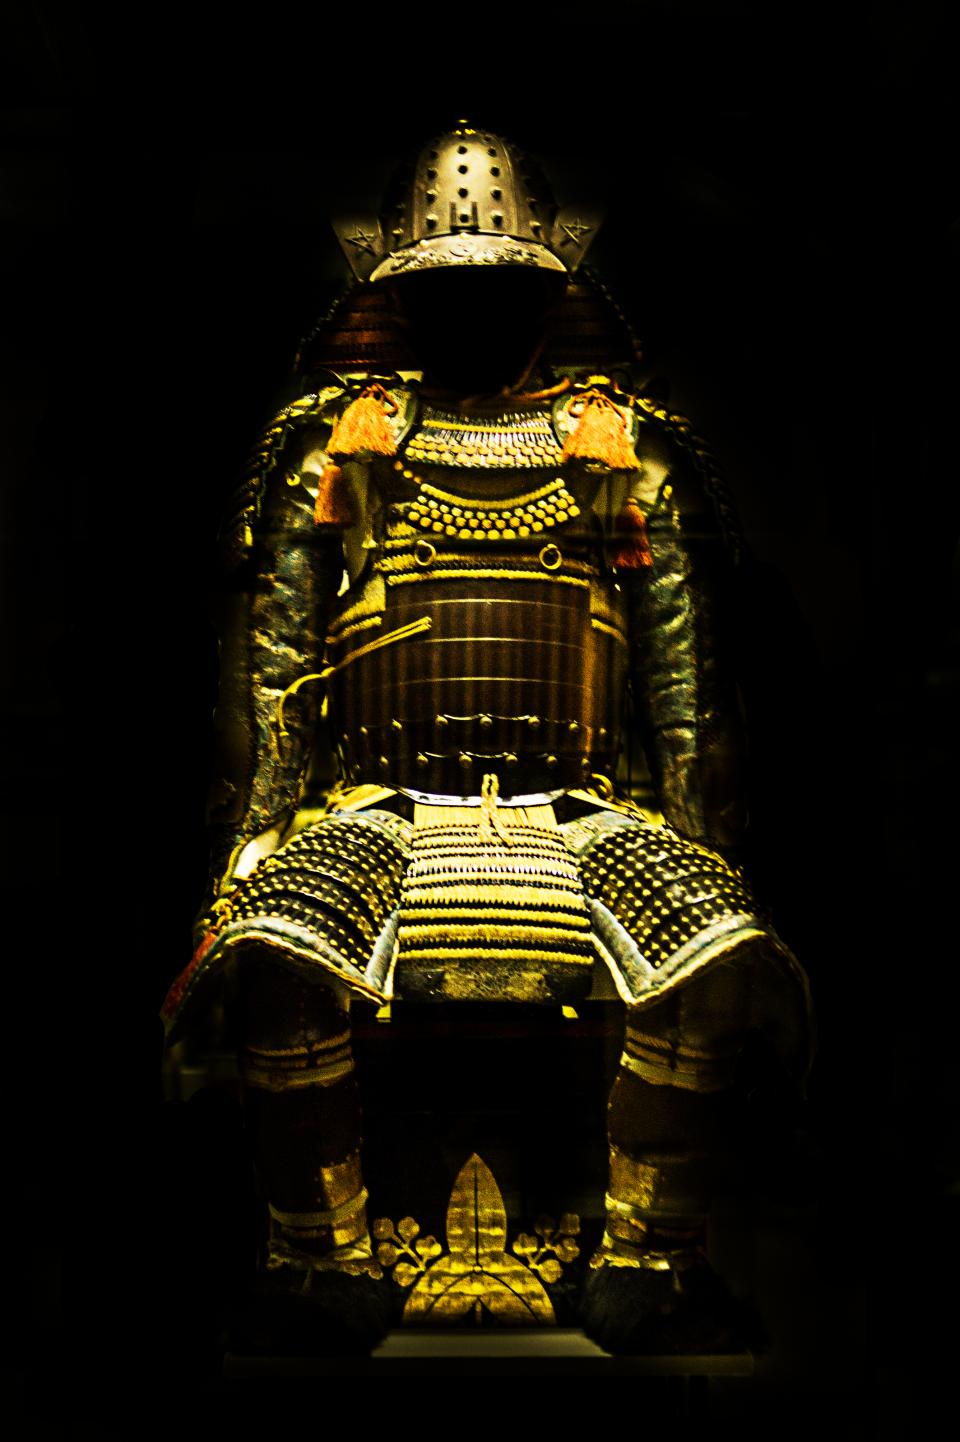 samurai gold armour statue